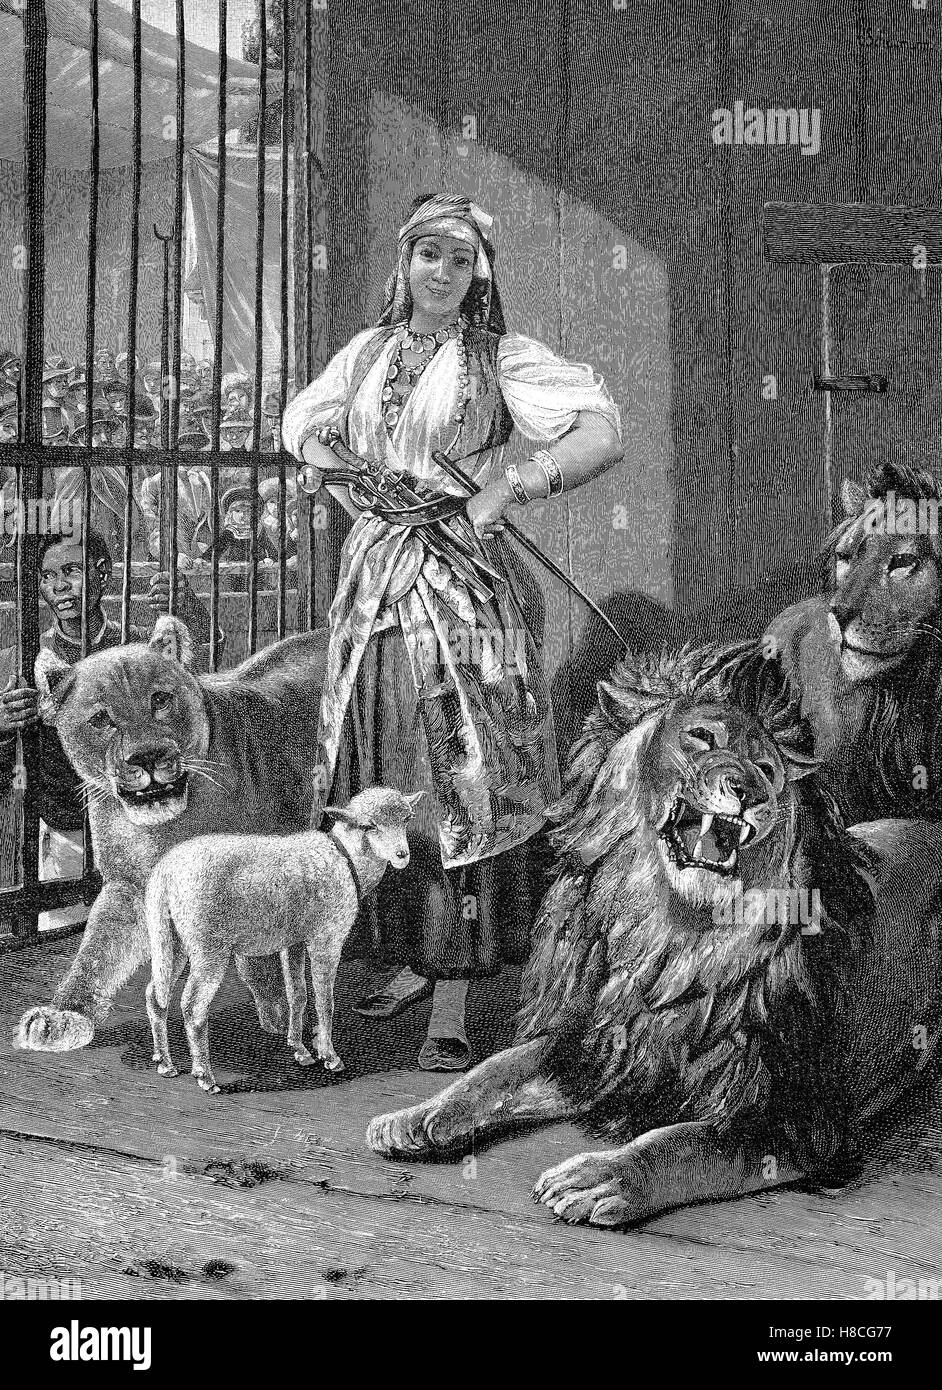 Circus lion tamer in the lion's den, Woodcut from 1892 - Stock Image